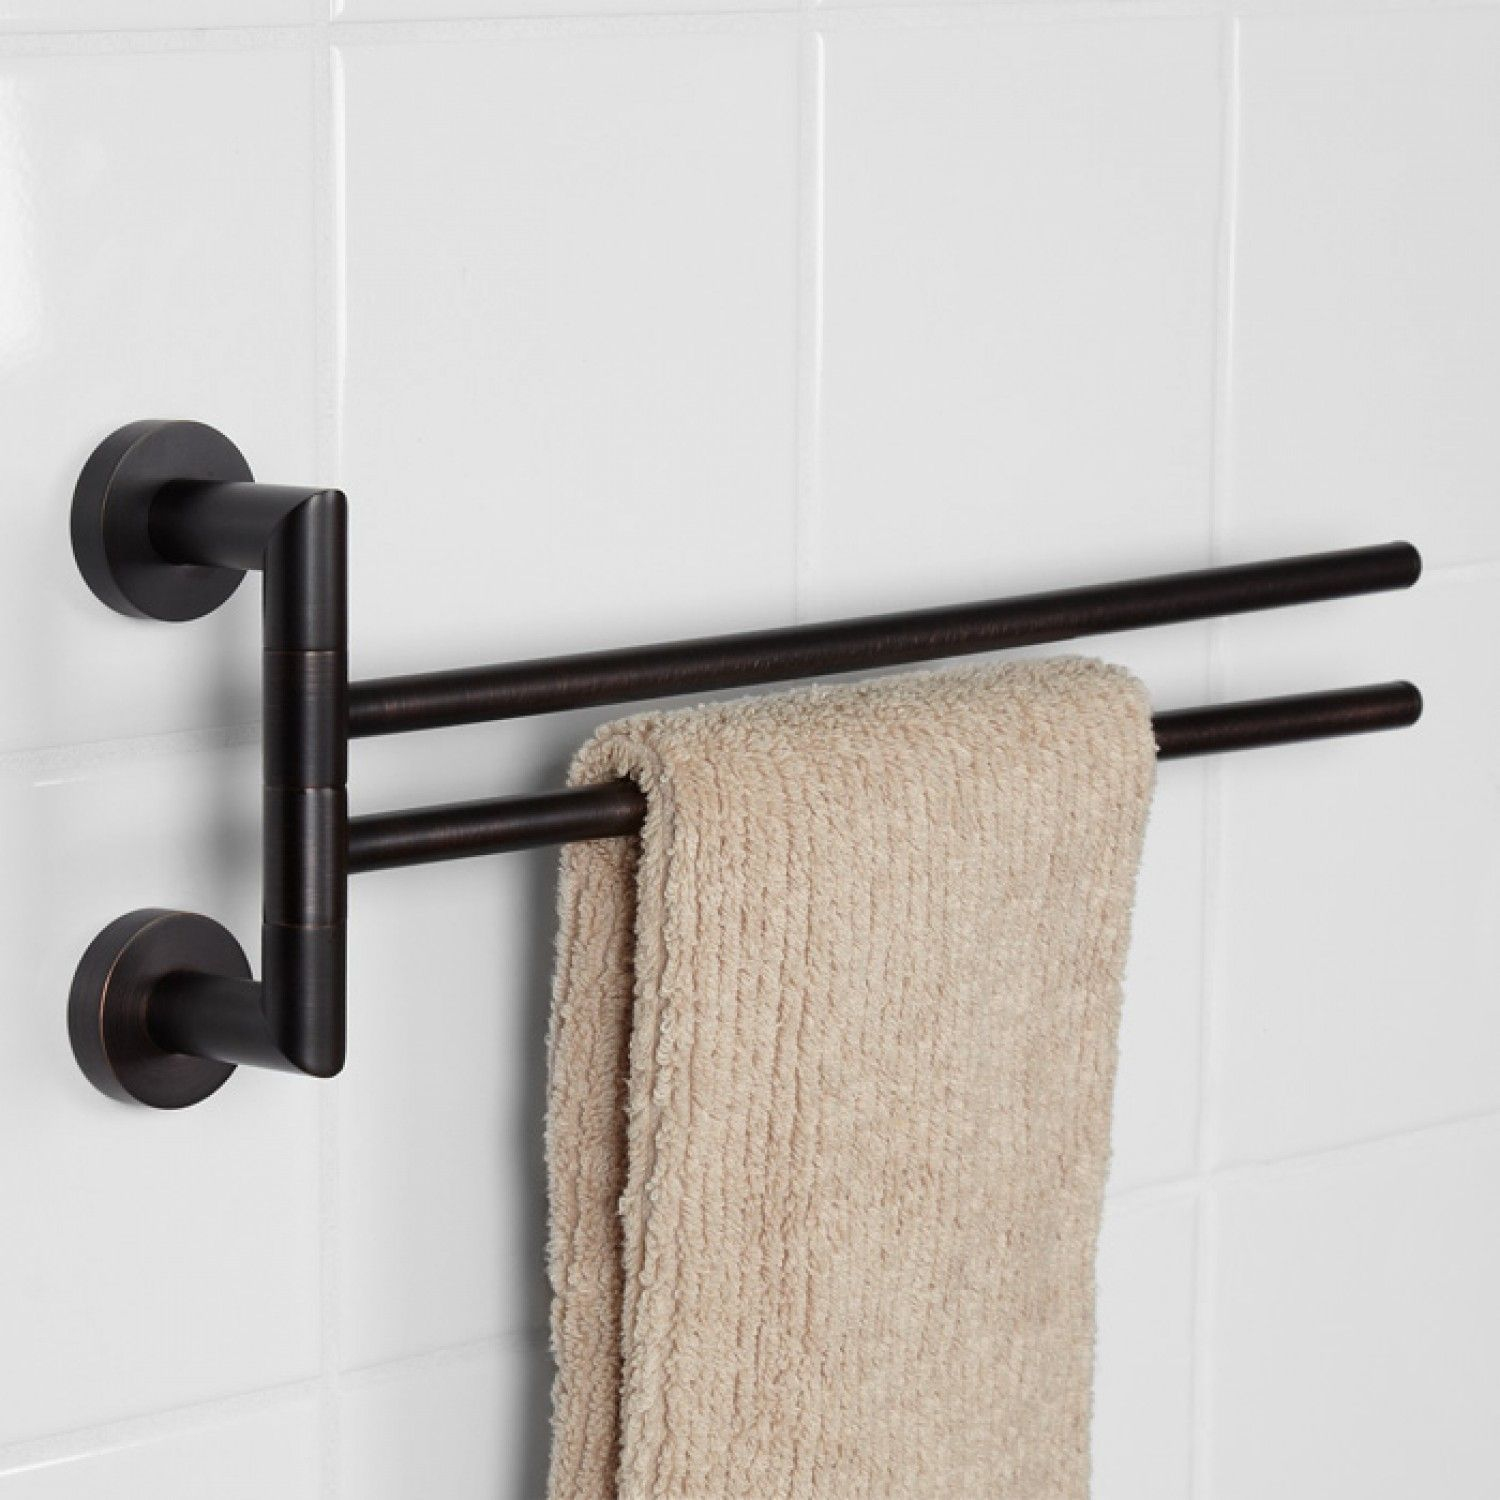 Fisting creamy swinging towel bar